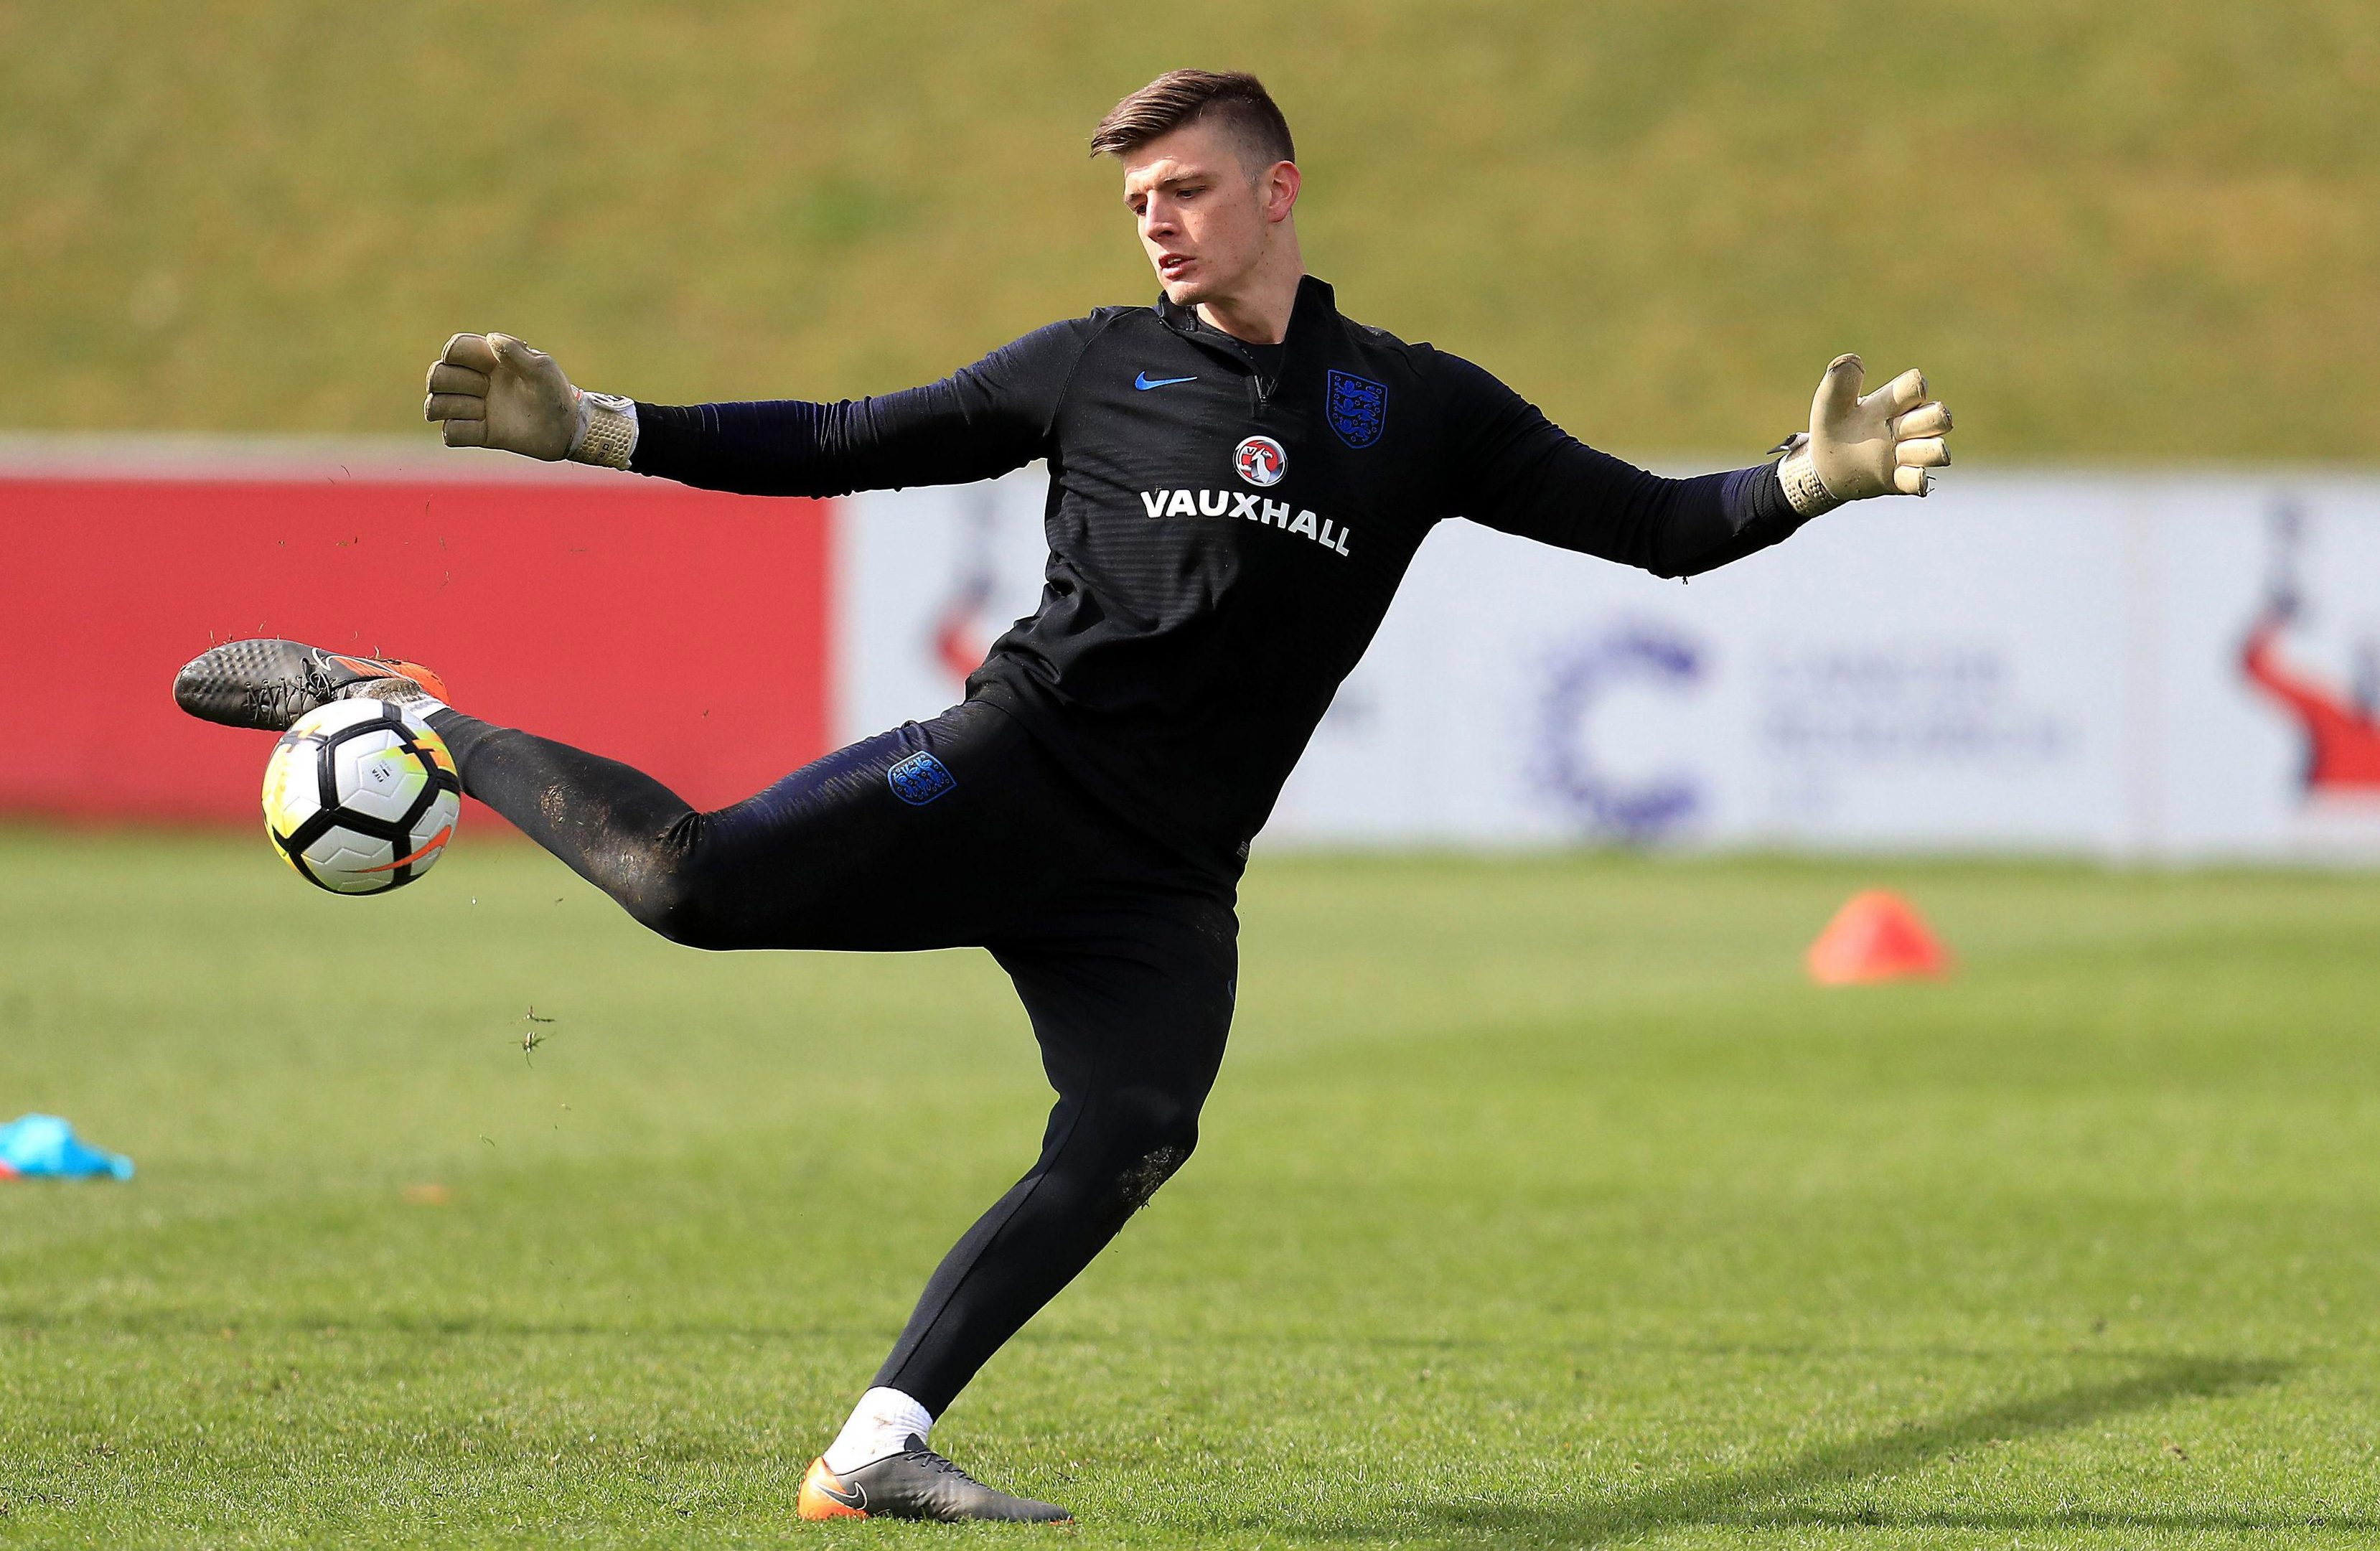 Clarets' ever-consistent Nick Pope is closing in on his Three Lions debut